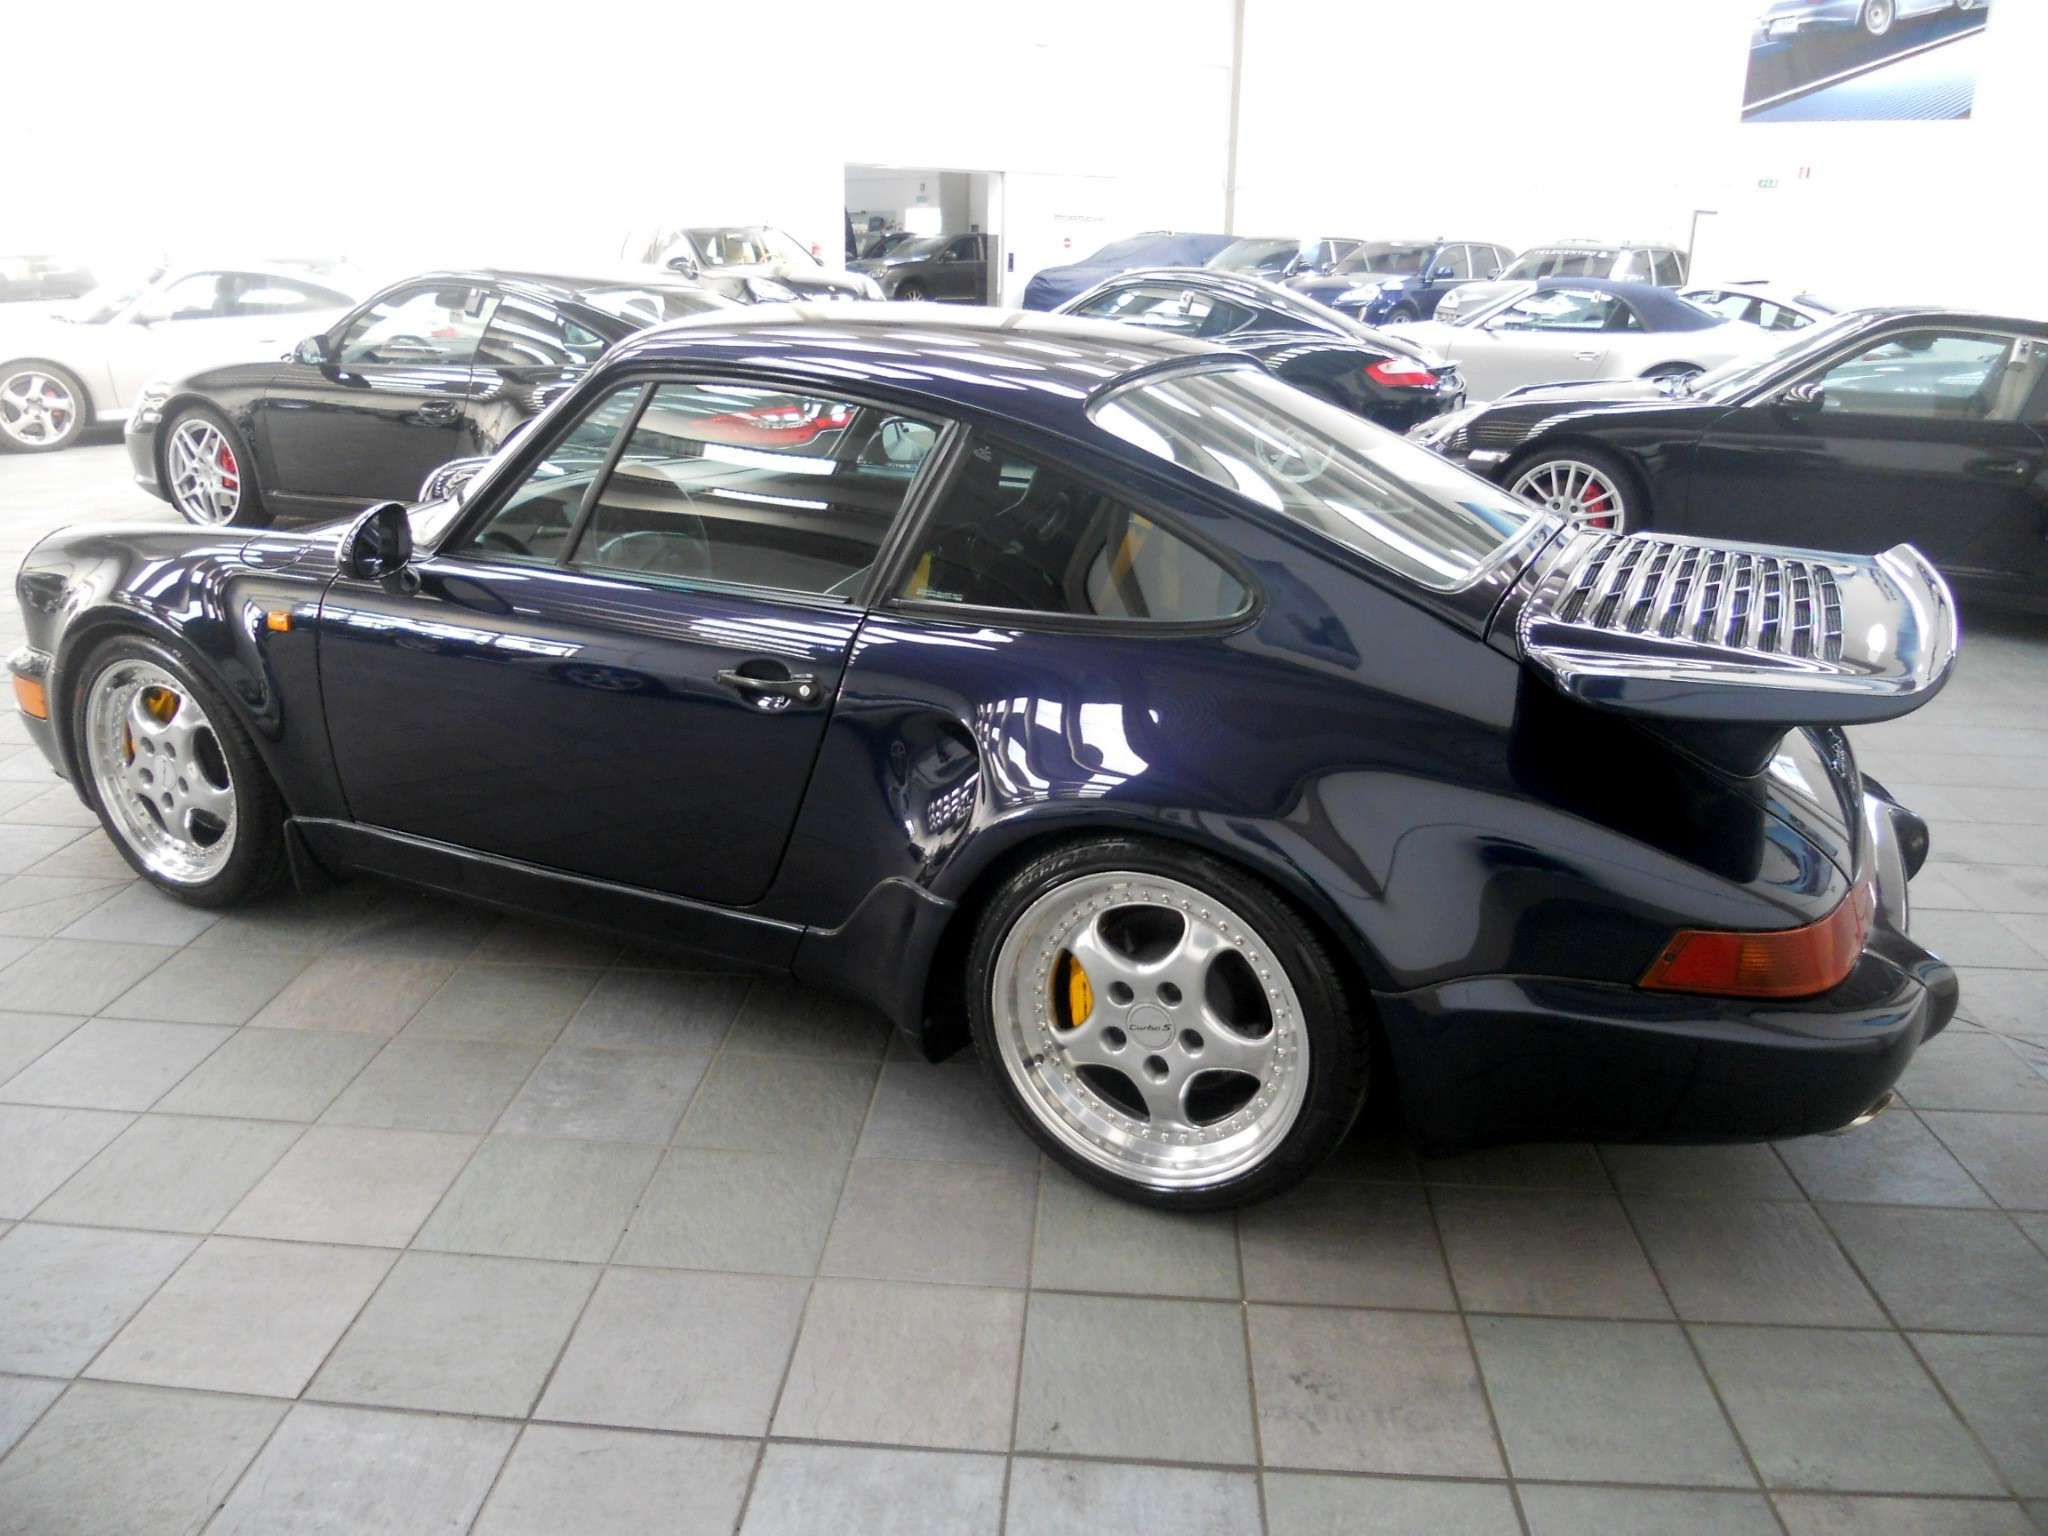 introducing my 964 turbo 39 s 39 leichtbau 6speedonline porsche forum and luxury car resource. Black Bedroom Furniture Sets. Home Design Ideas